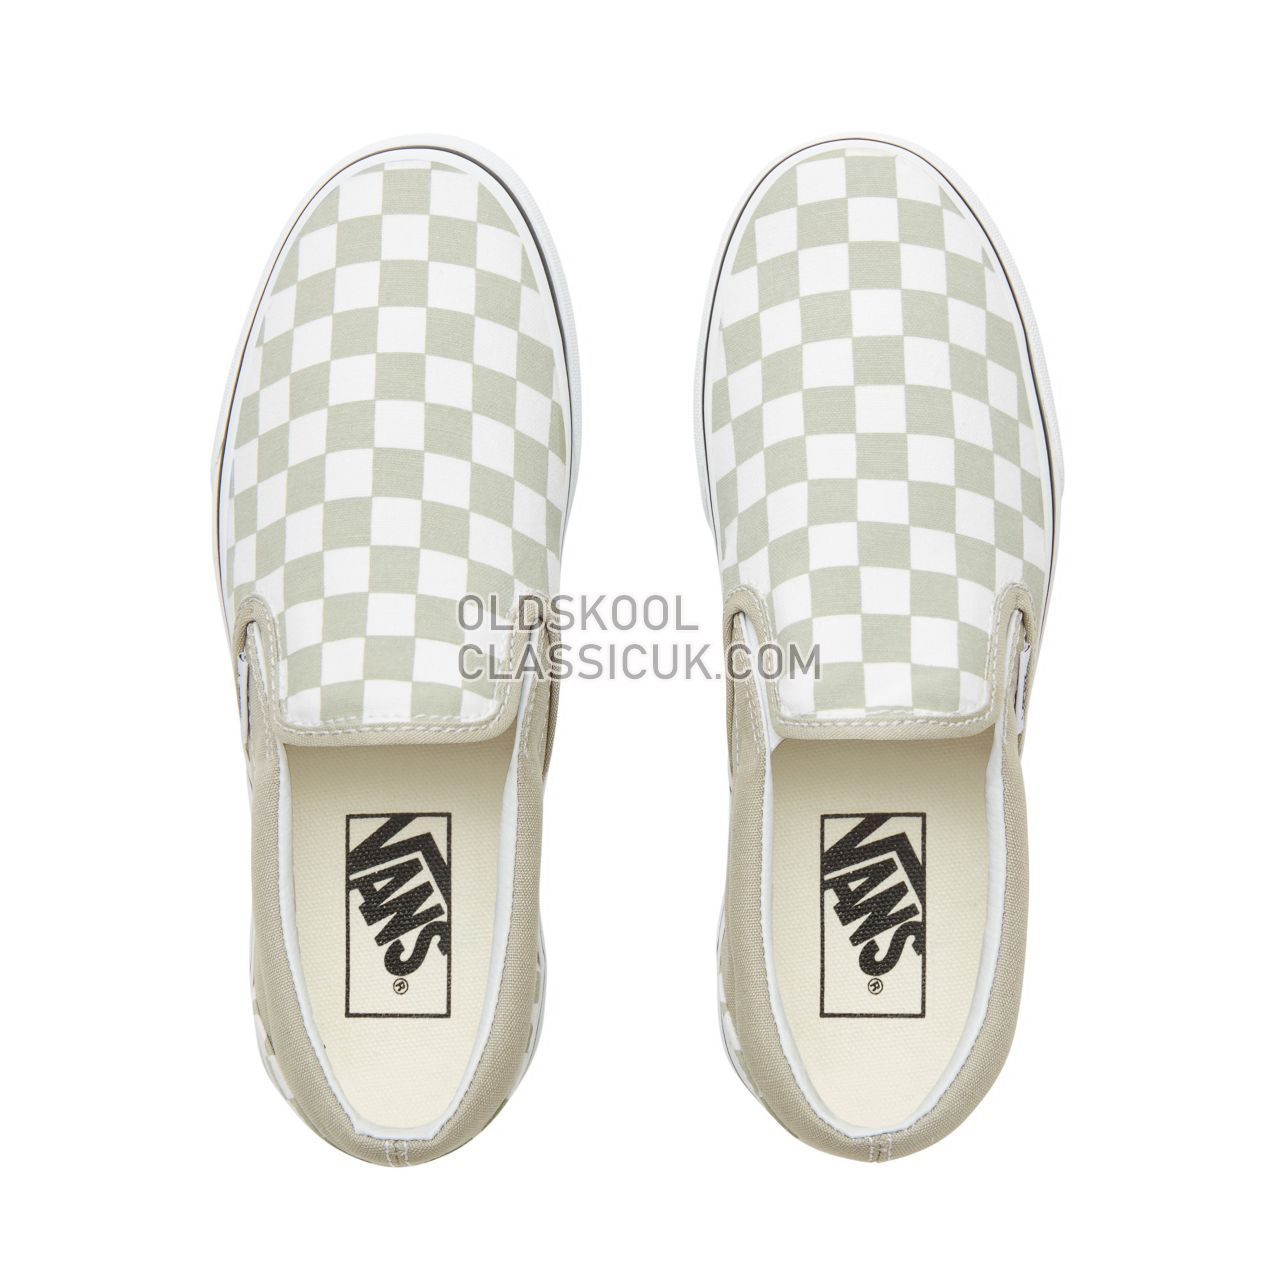 Vans Color Theory Checkerboard Classic Slip-On Sneakers (Unisex) Mens (Checkerboard) Desert Sage/True White VA38F7U79 Shoes